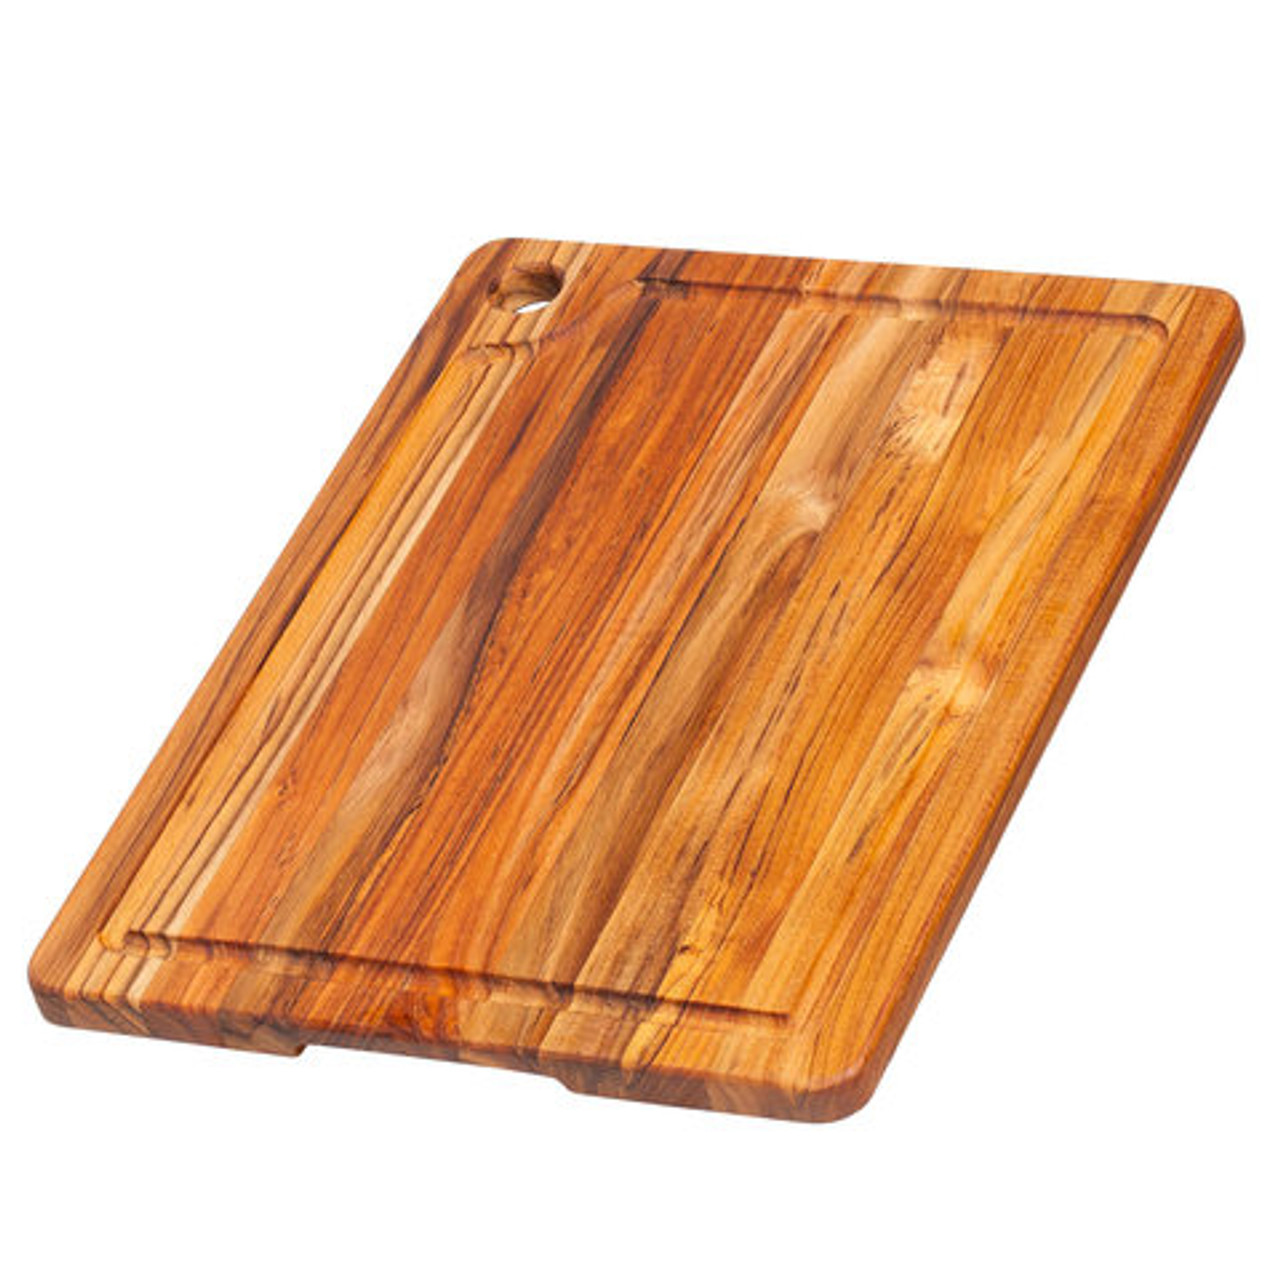 TEAKHAUS CUTTING BOARD CORNER HOLE JUICE GROOVE 18x14